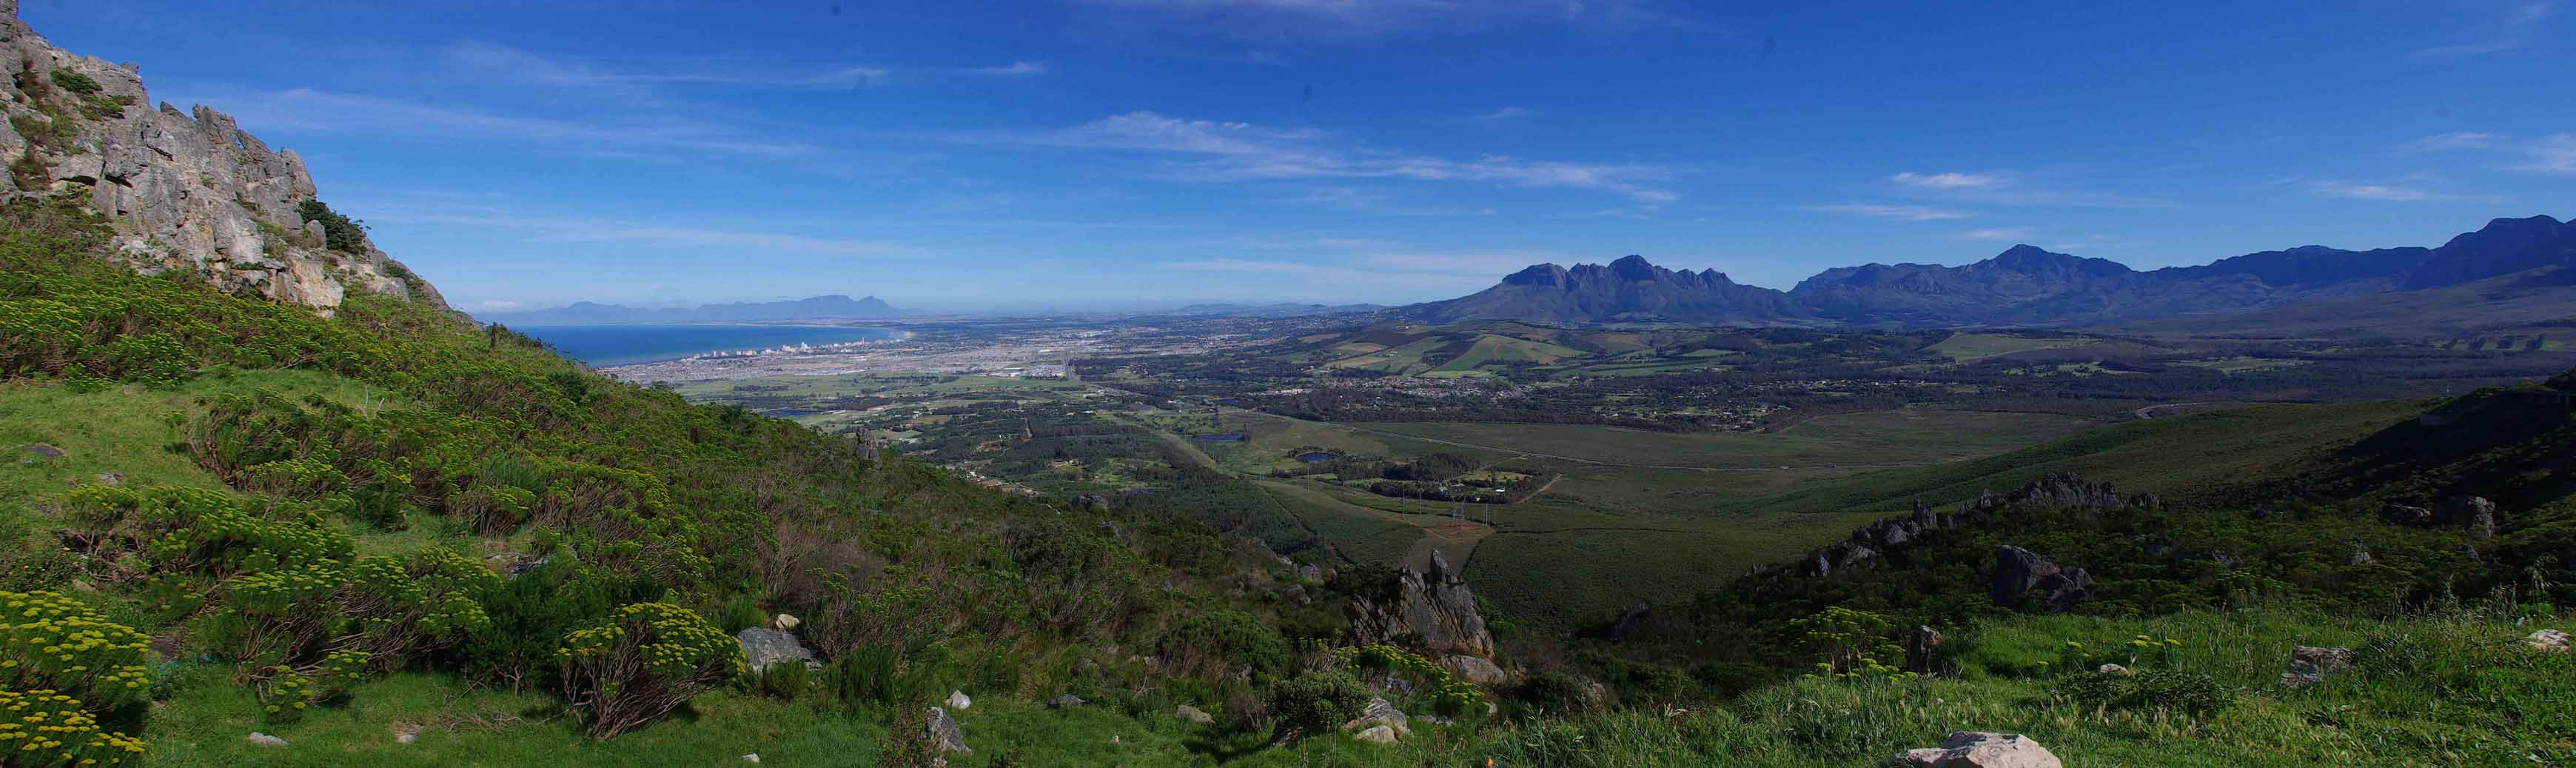 Panorama from Sir Lowry's Pass across False Bay